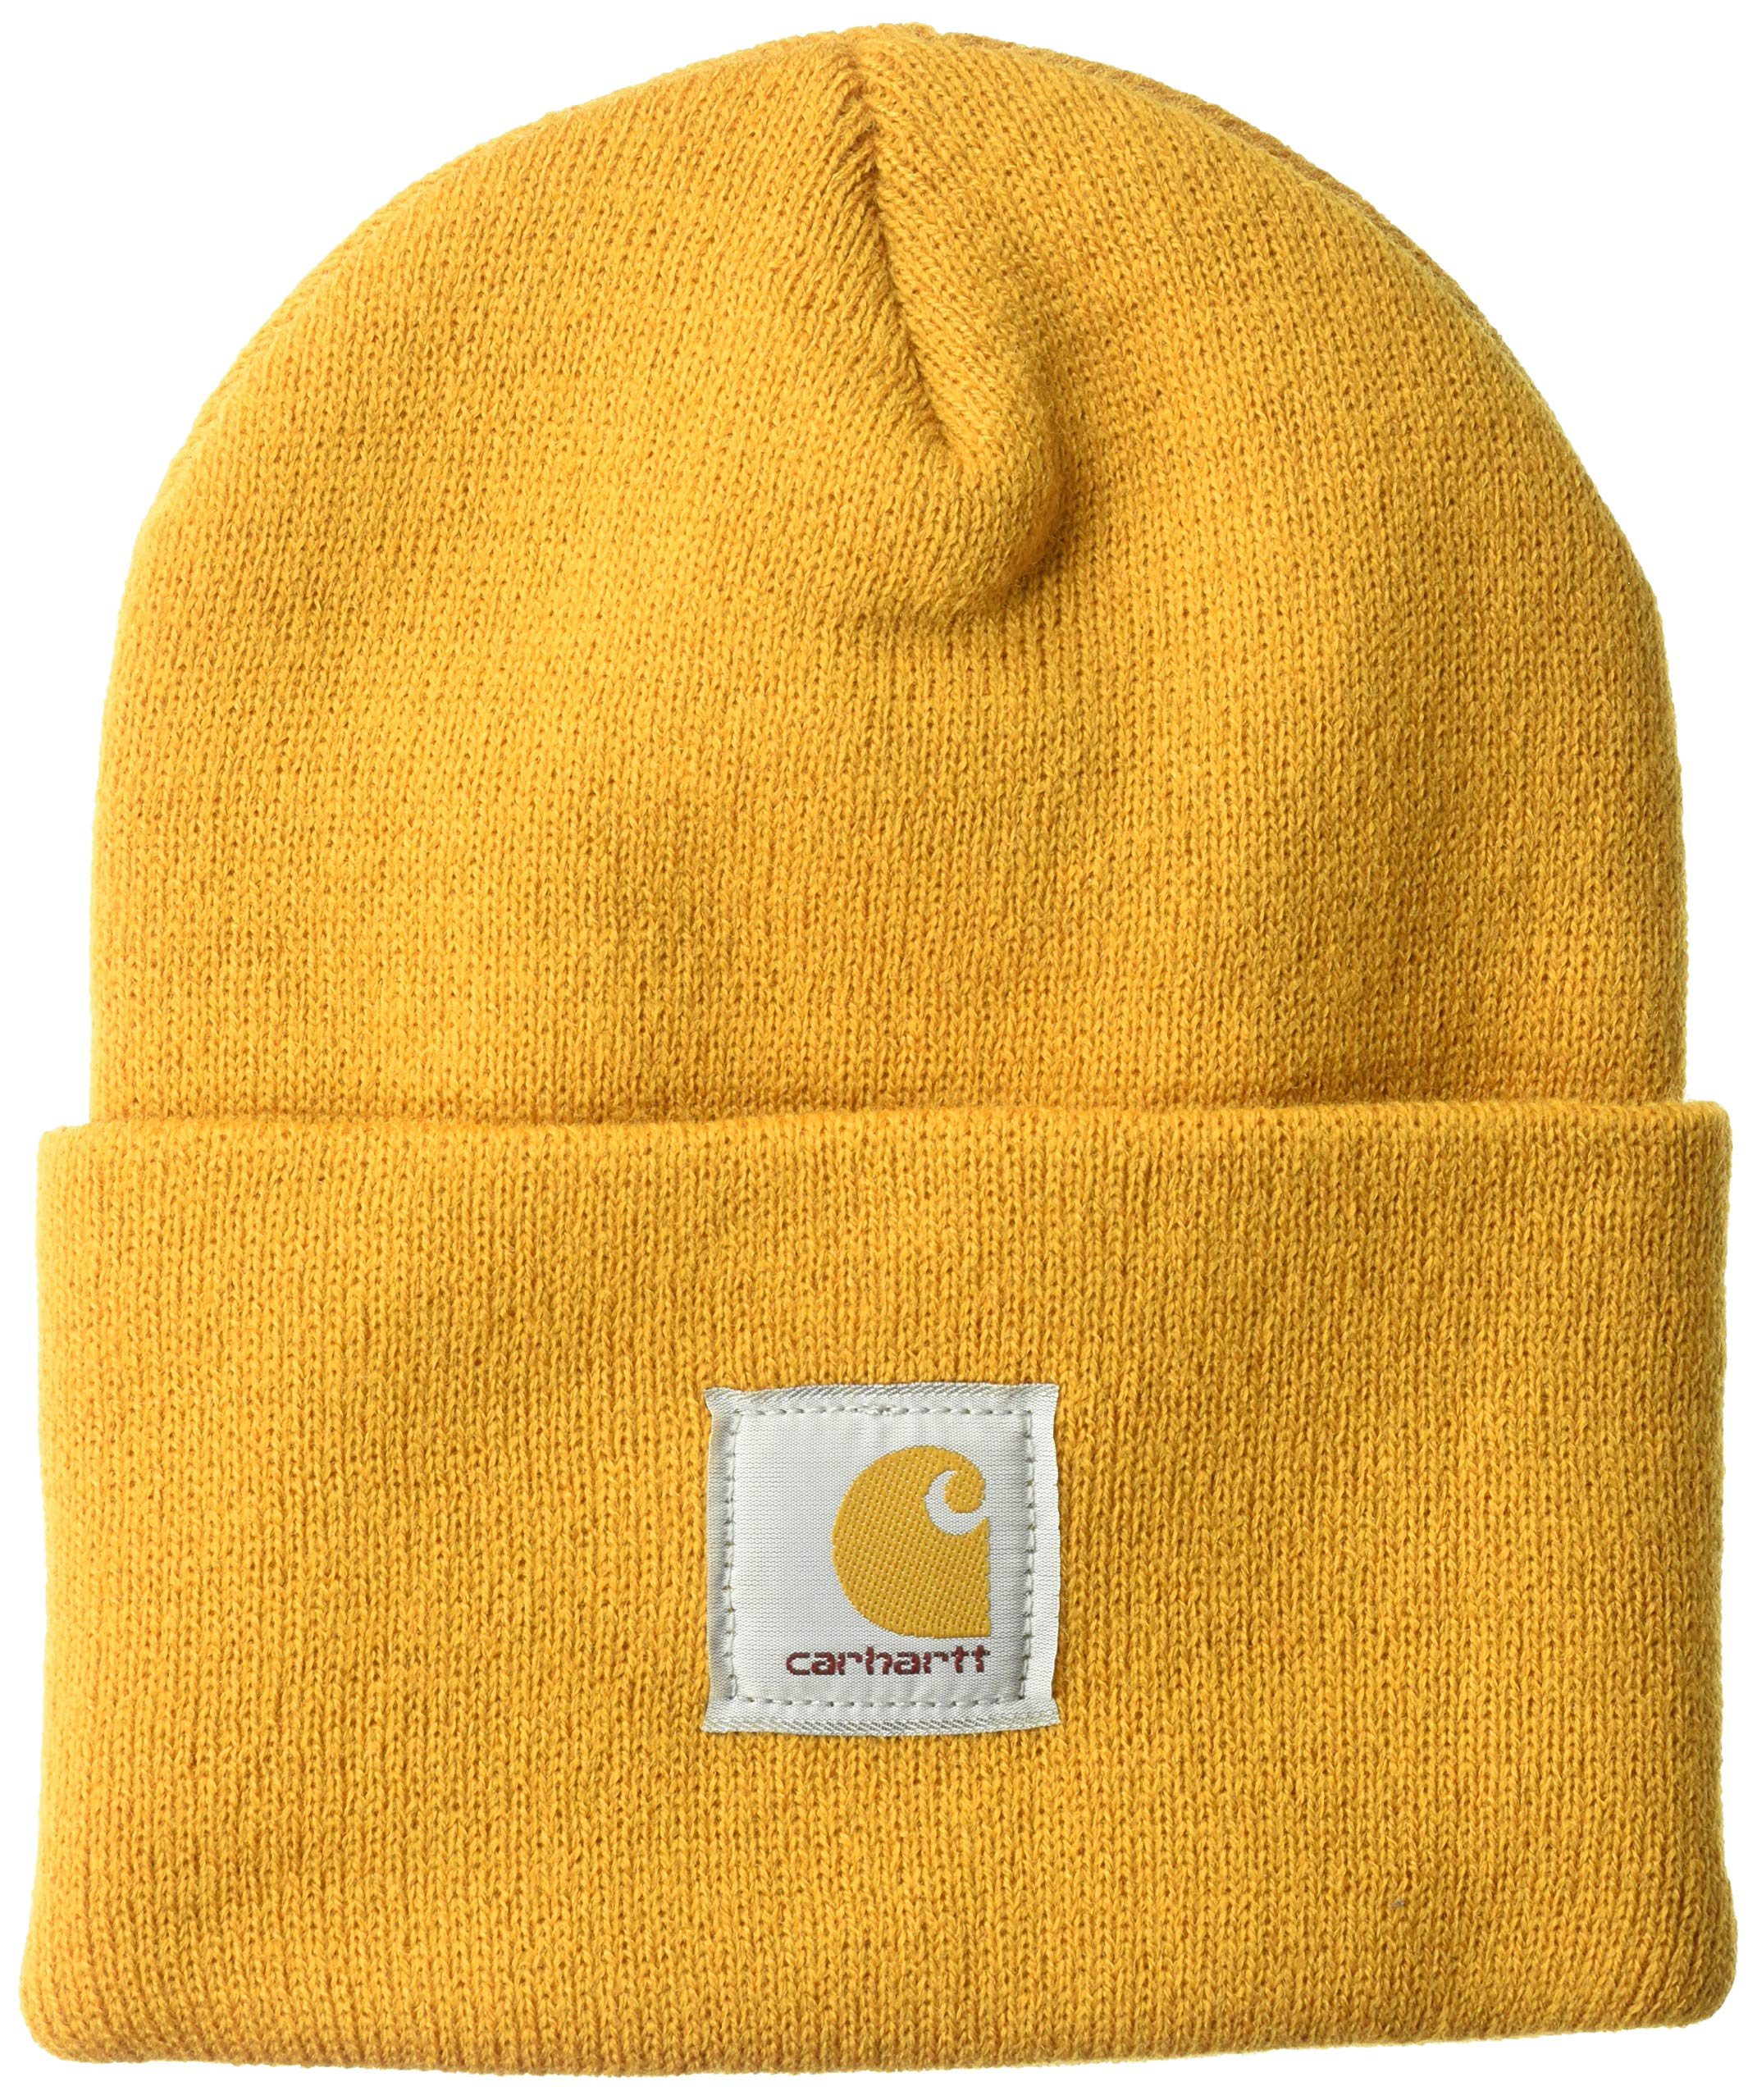 Carhartt Men's Acrylic Watch Hat A18, Gold, One Size by Carhartt